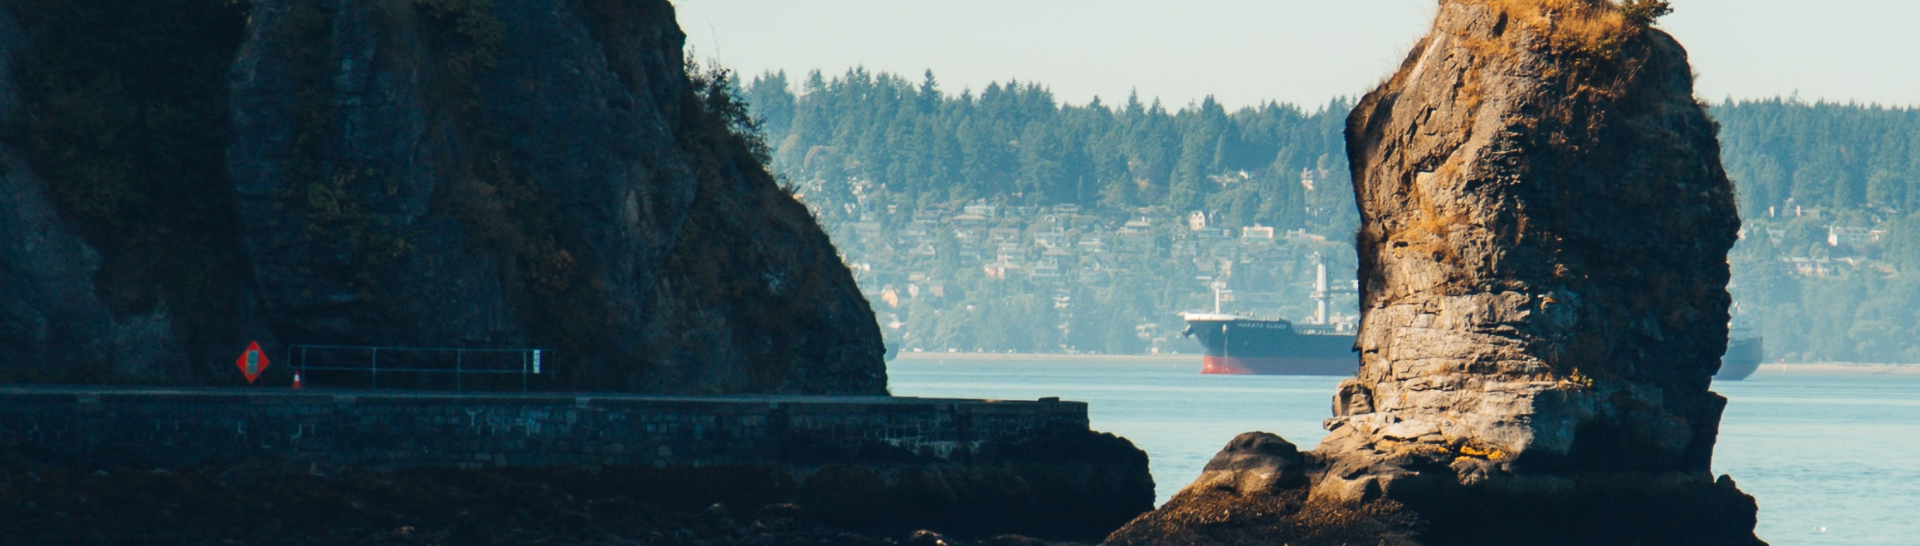 Cargo ship by the Vancouver sea wall